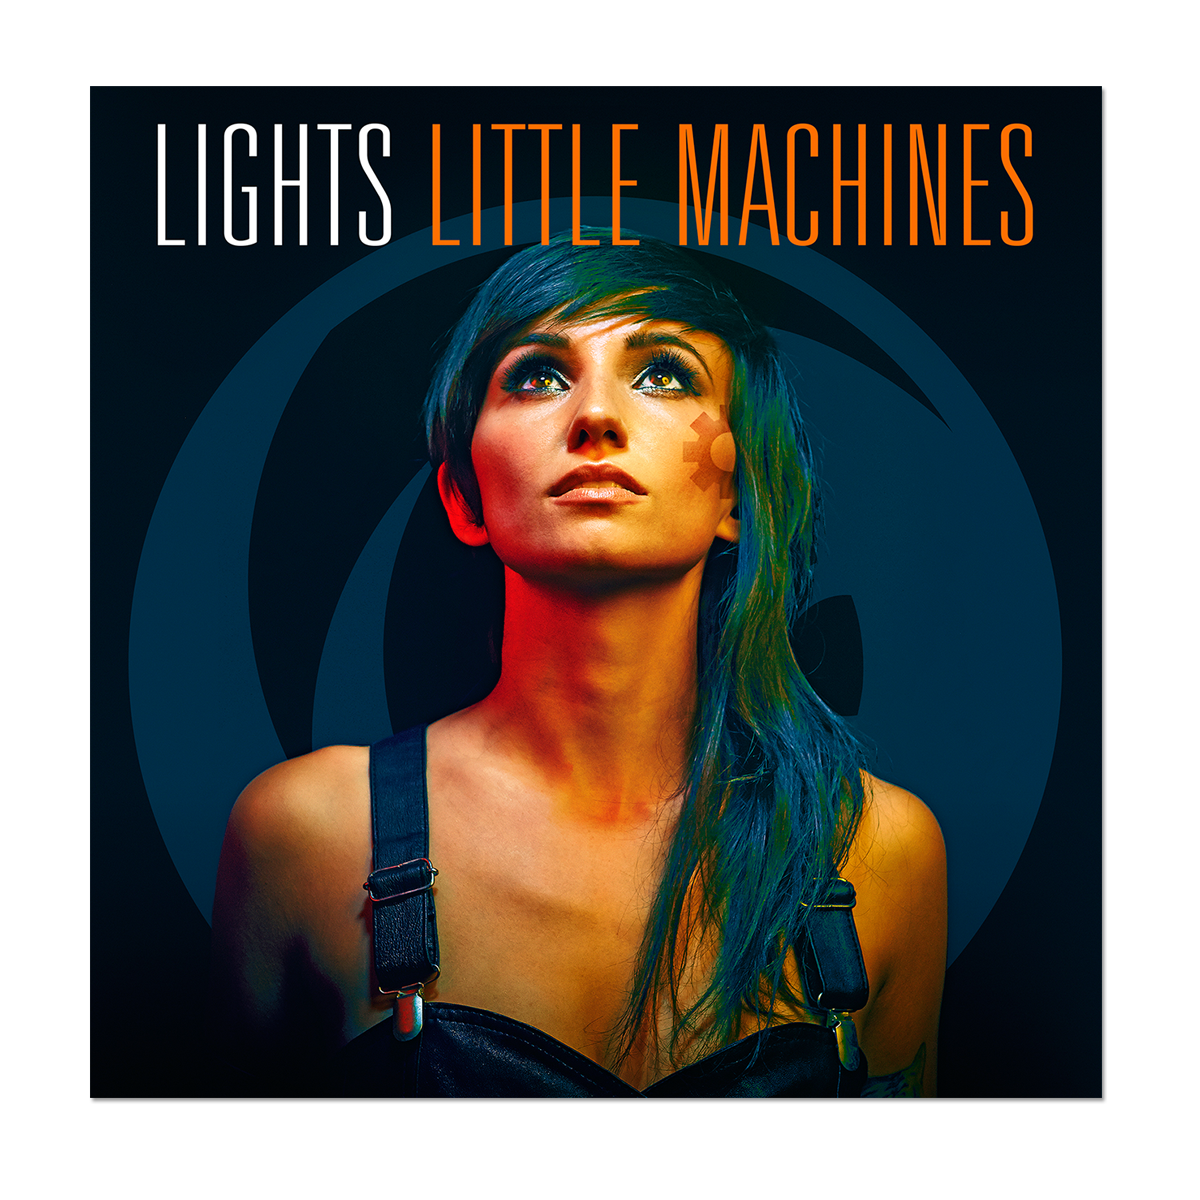 lights-littlemachines-album_2